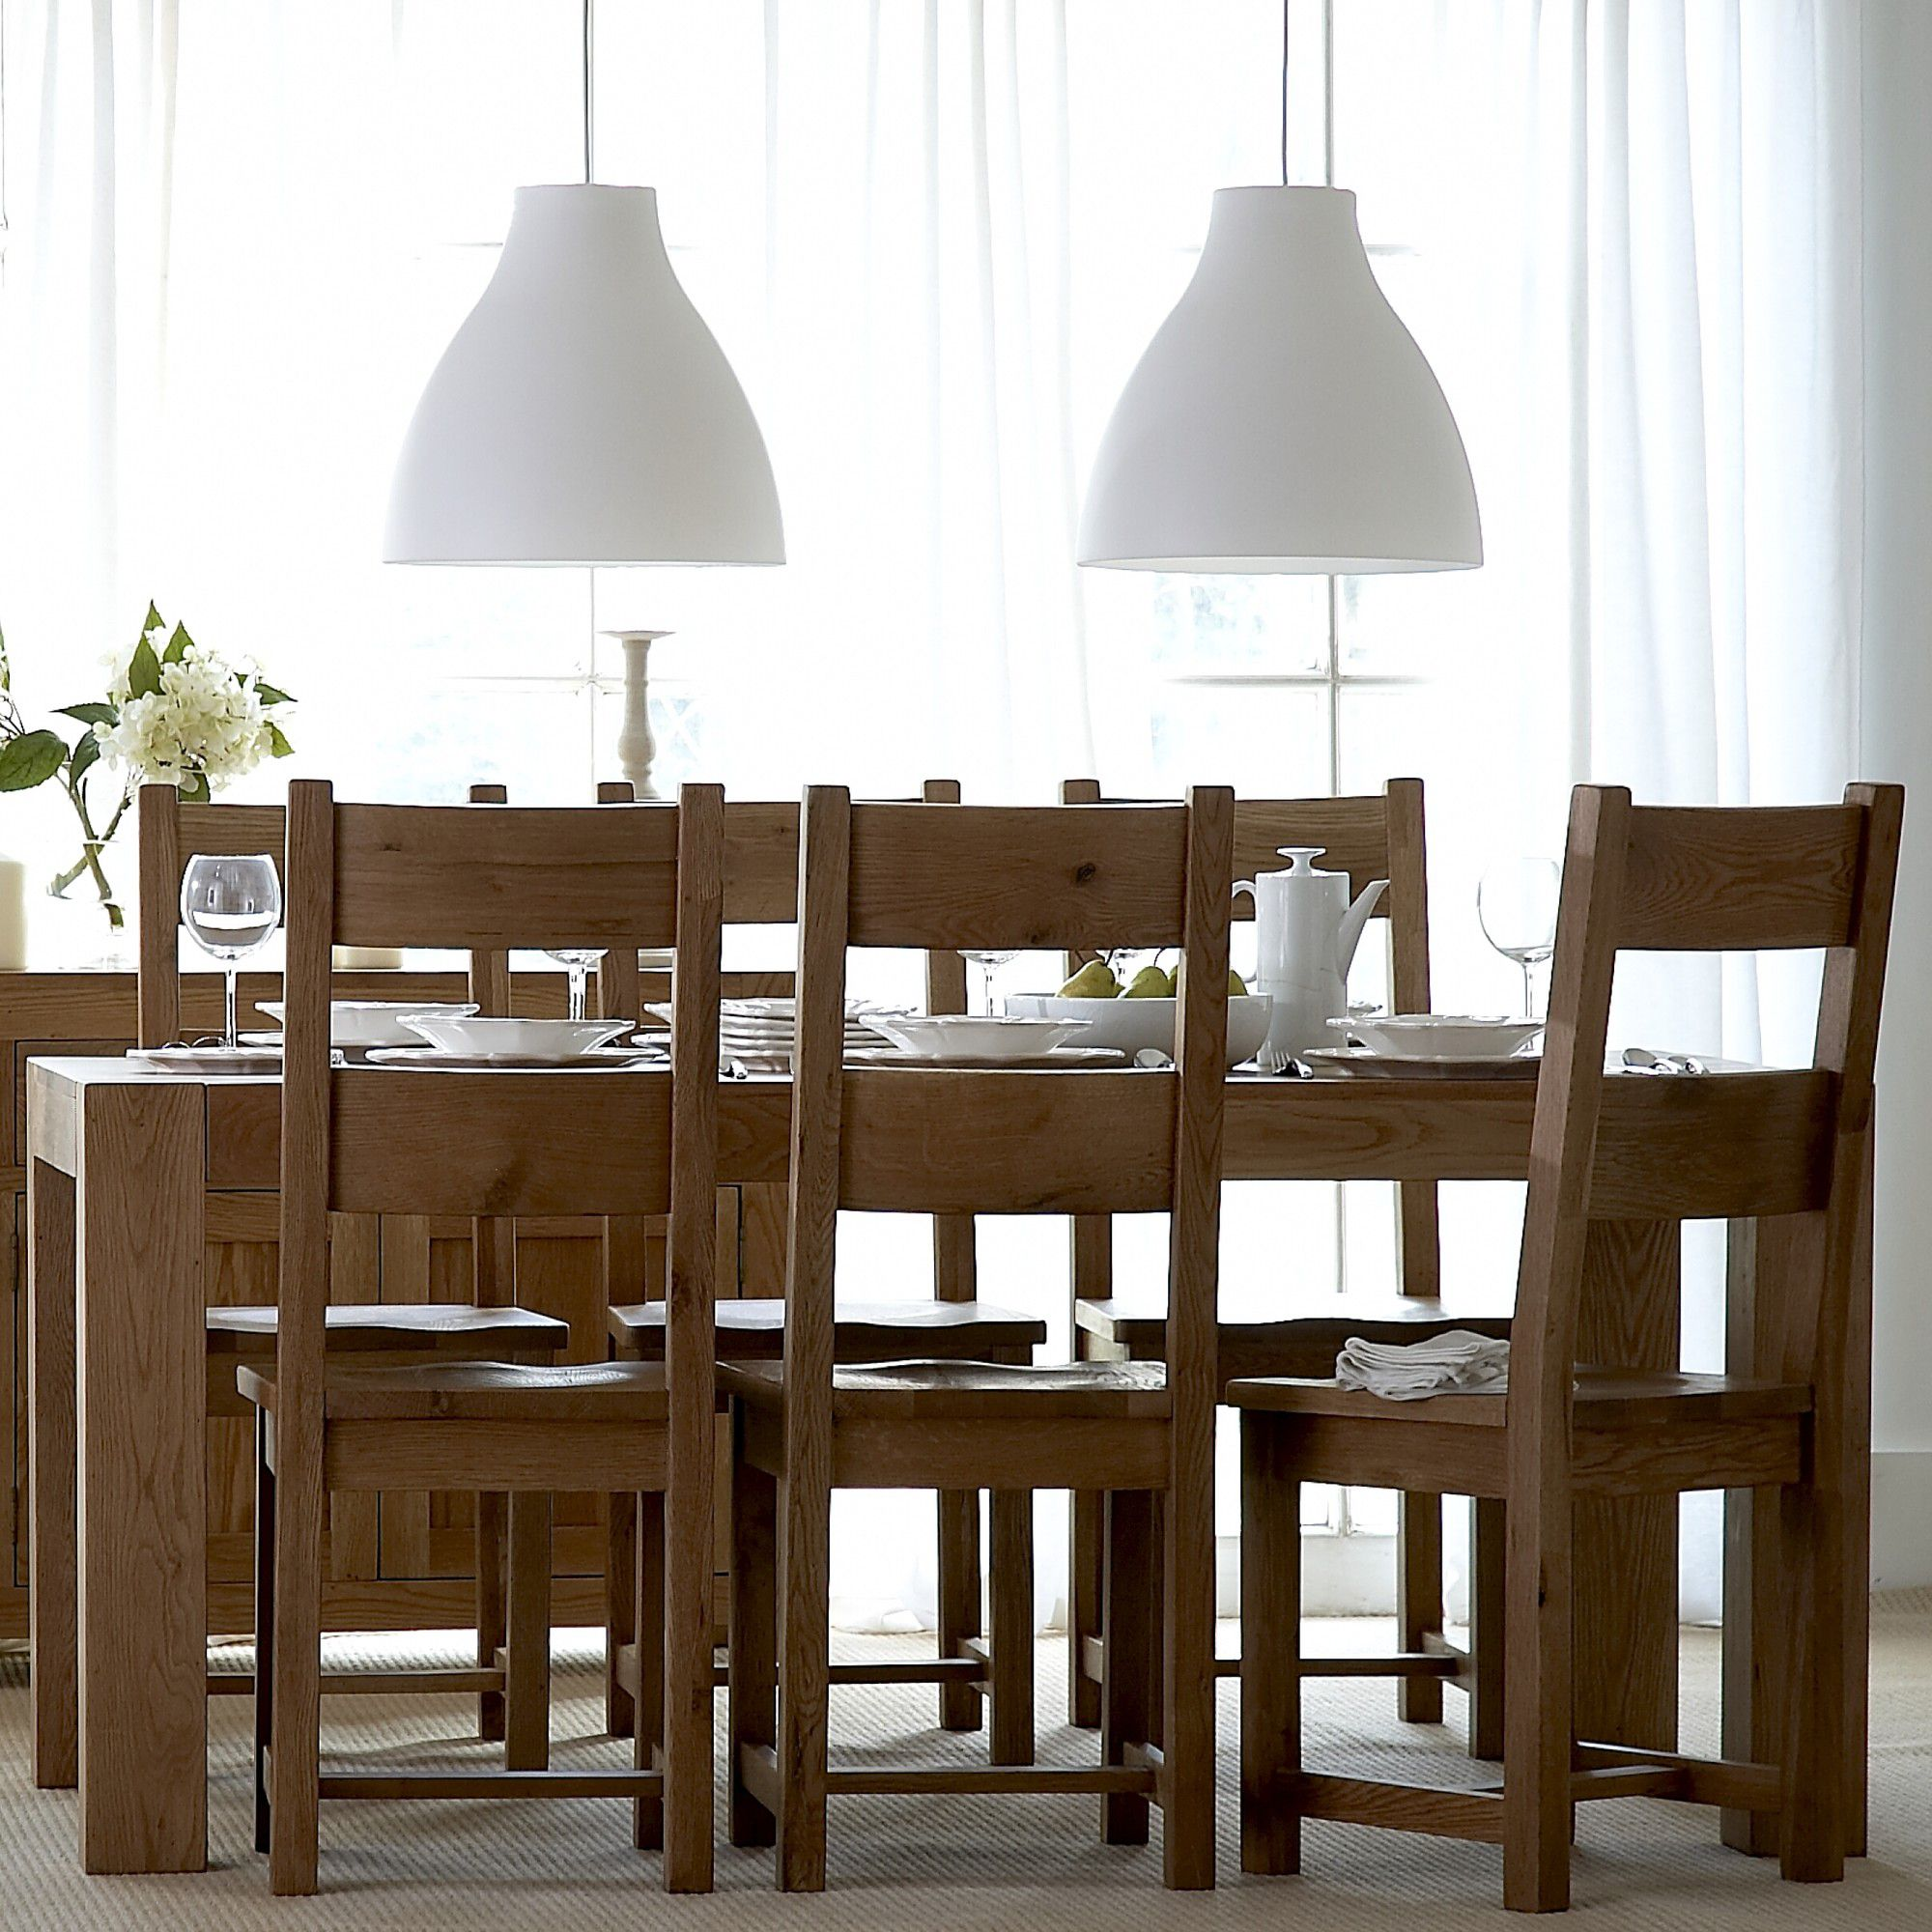 Thorndon Block 7 Piece Dining Set in Natural Matured Solid Oak at Tesco Direct